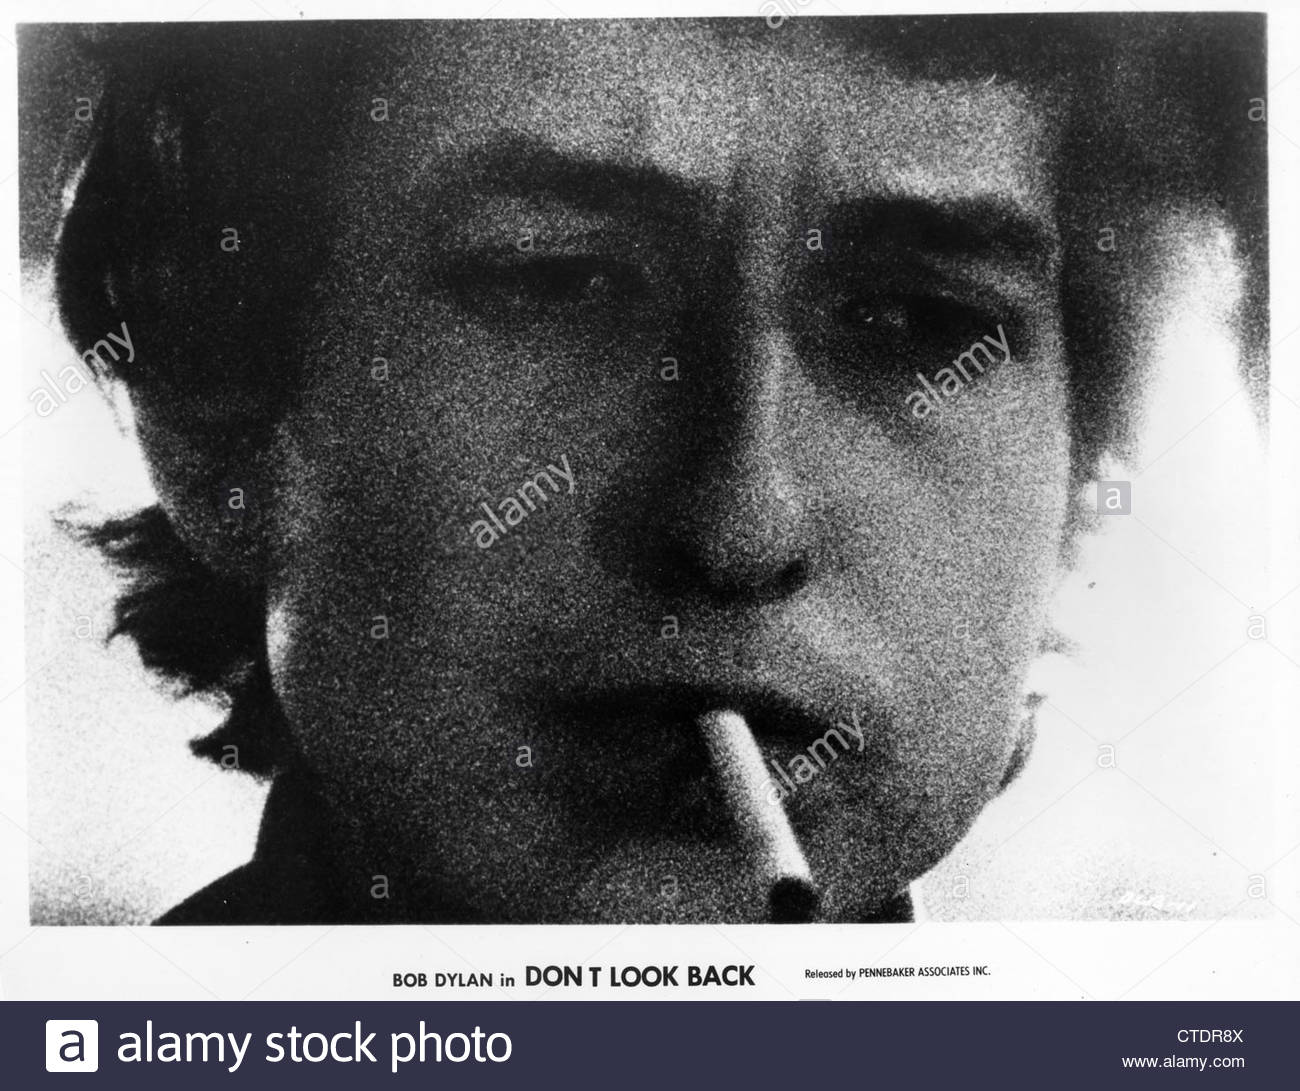 Bob Dylan in a still from the 1967 documentary film Don't Look Back. Photo Courtesy Granamour Weems Archive. - Stock Image